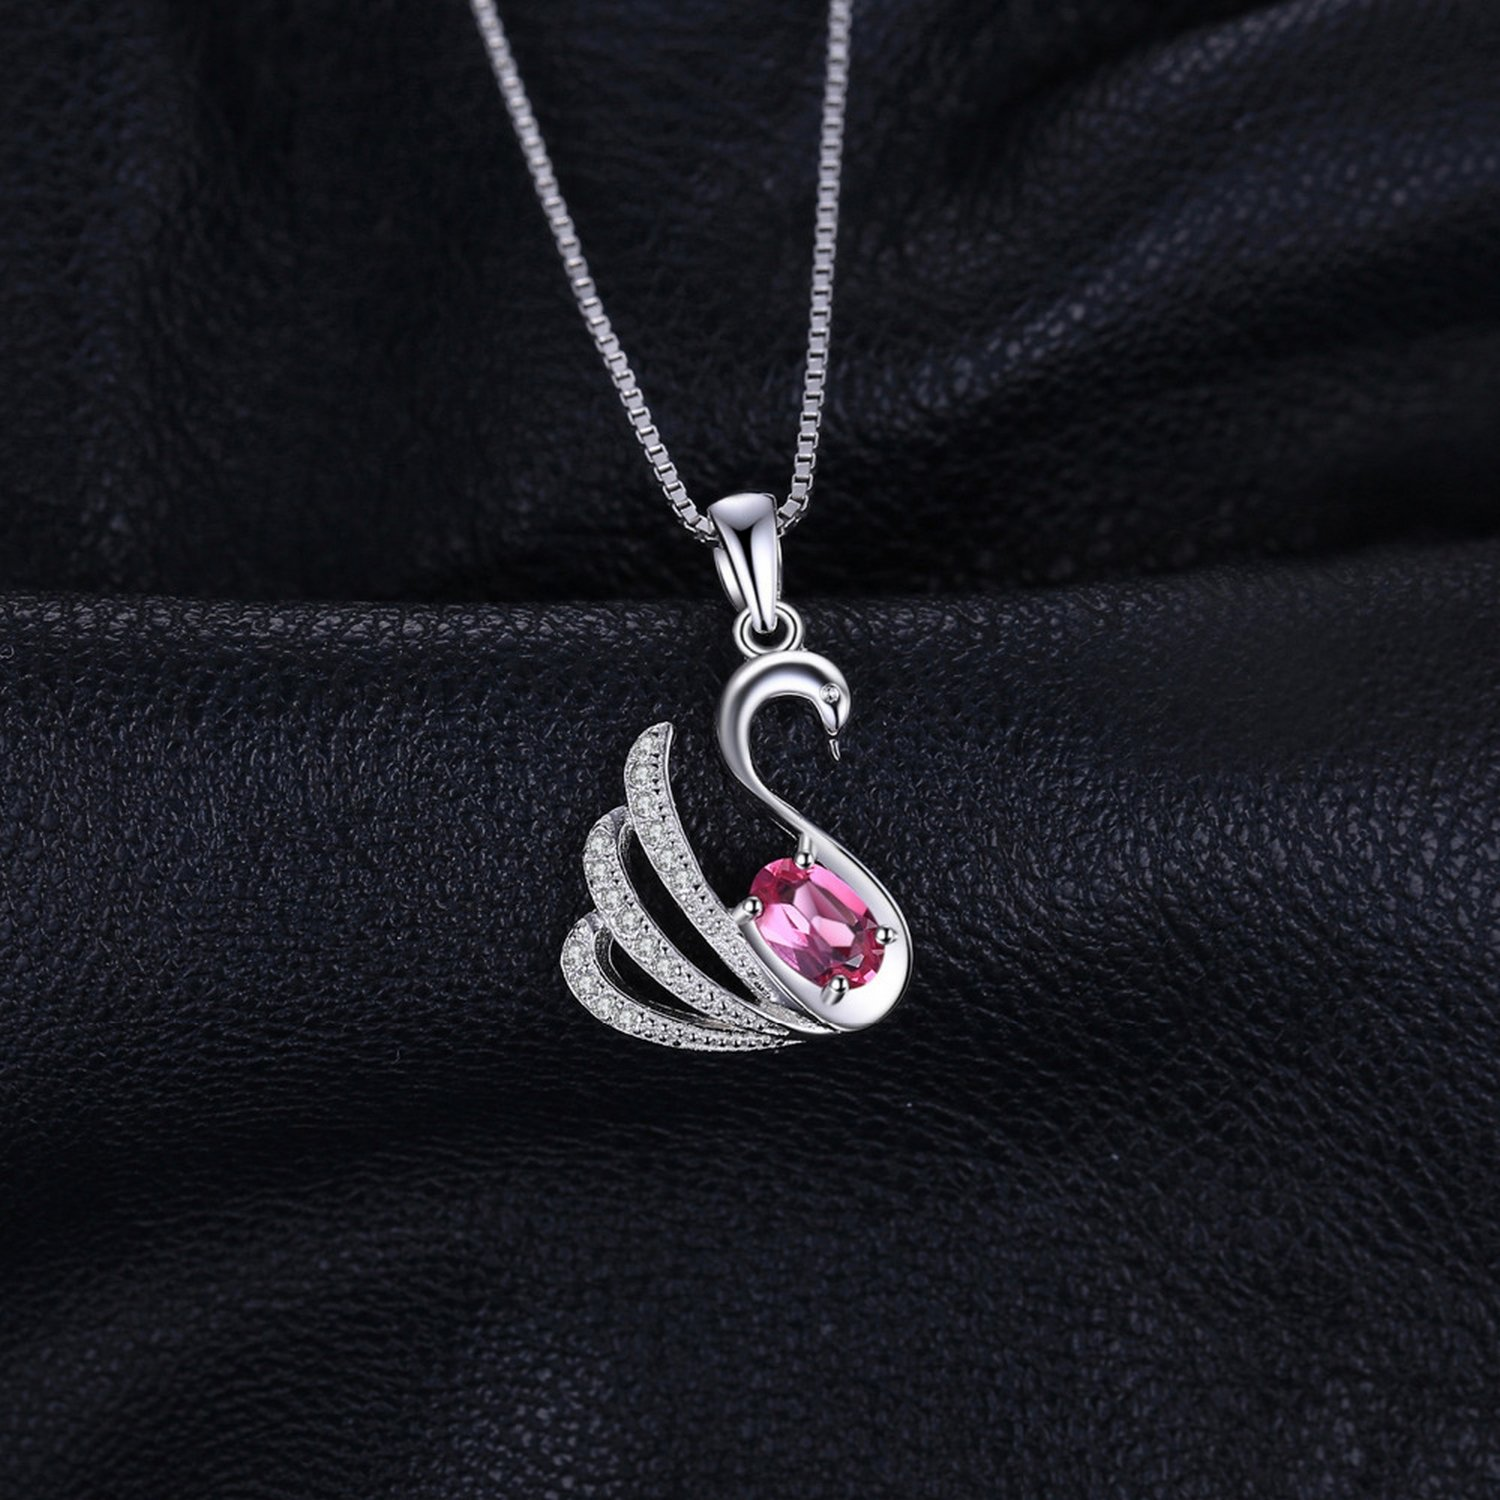 CS-DB Pendants Exquisite 0.5ct Pink Topaz Swan Gift Silver Necklaces